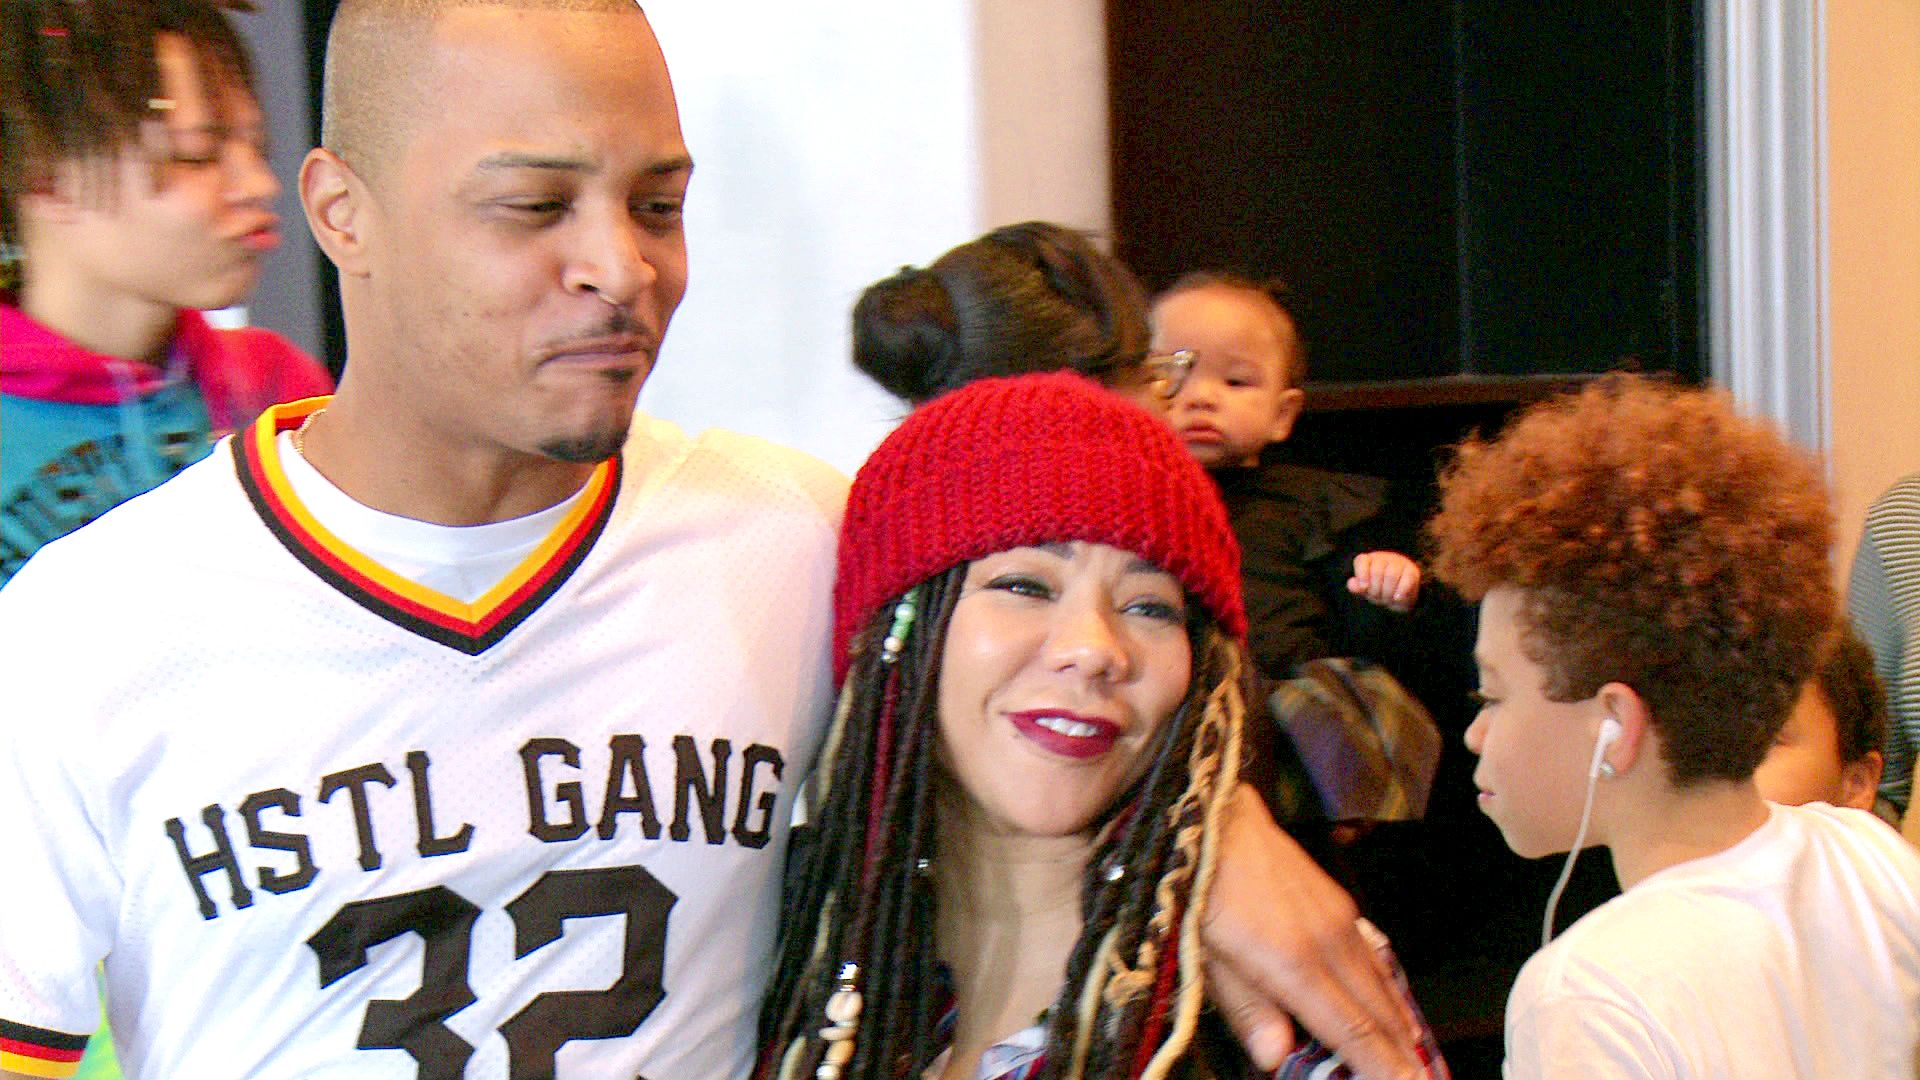 T.I. And Tiny Get The Whole Family Together - T.I. & Tiny: The Family Hustle (Video Clip) | VH1